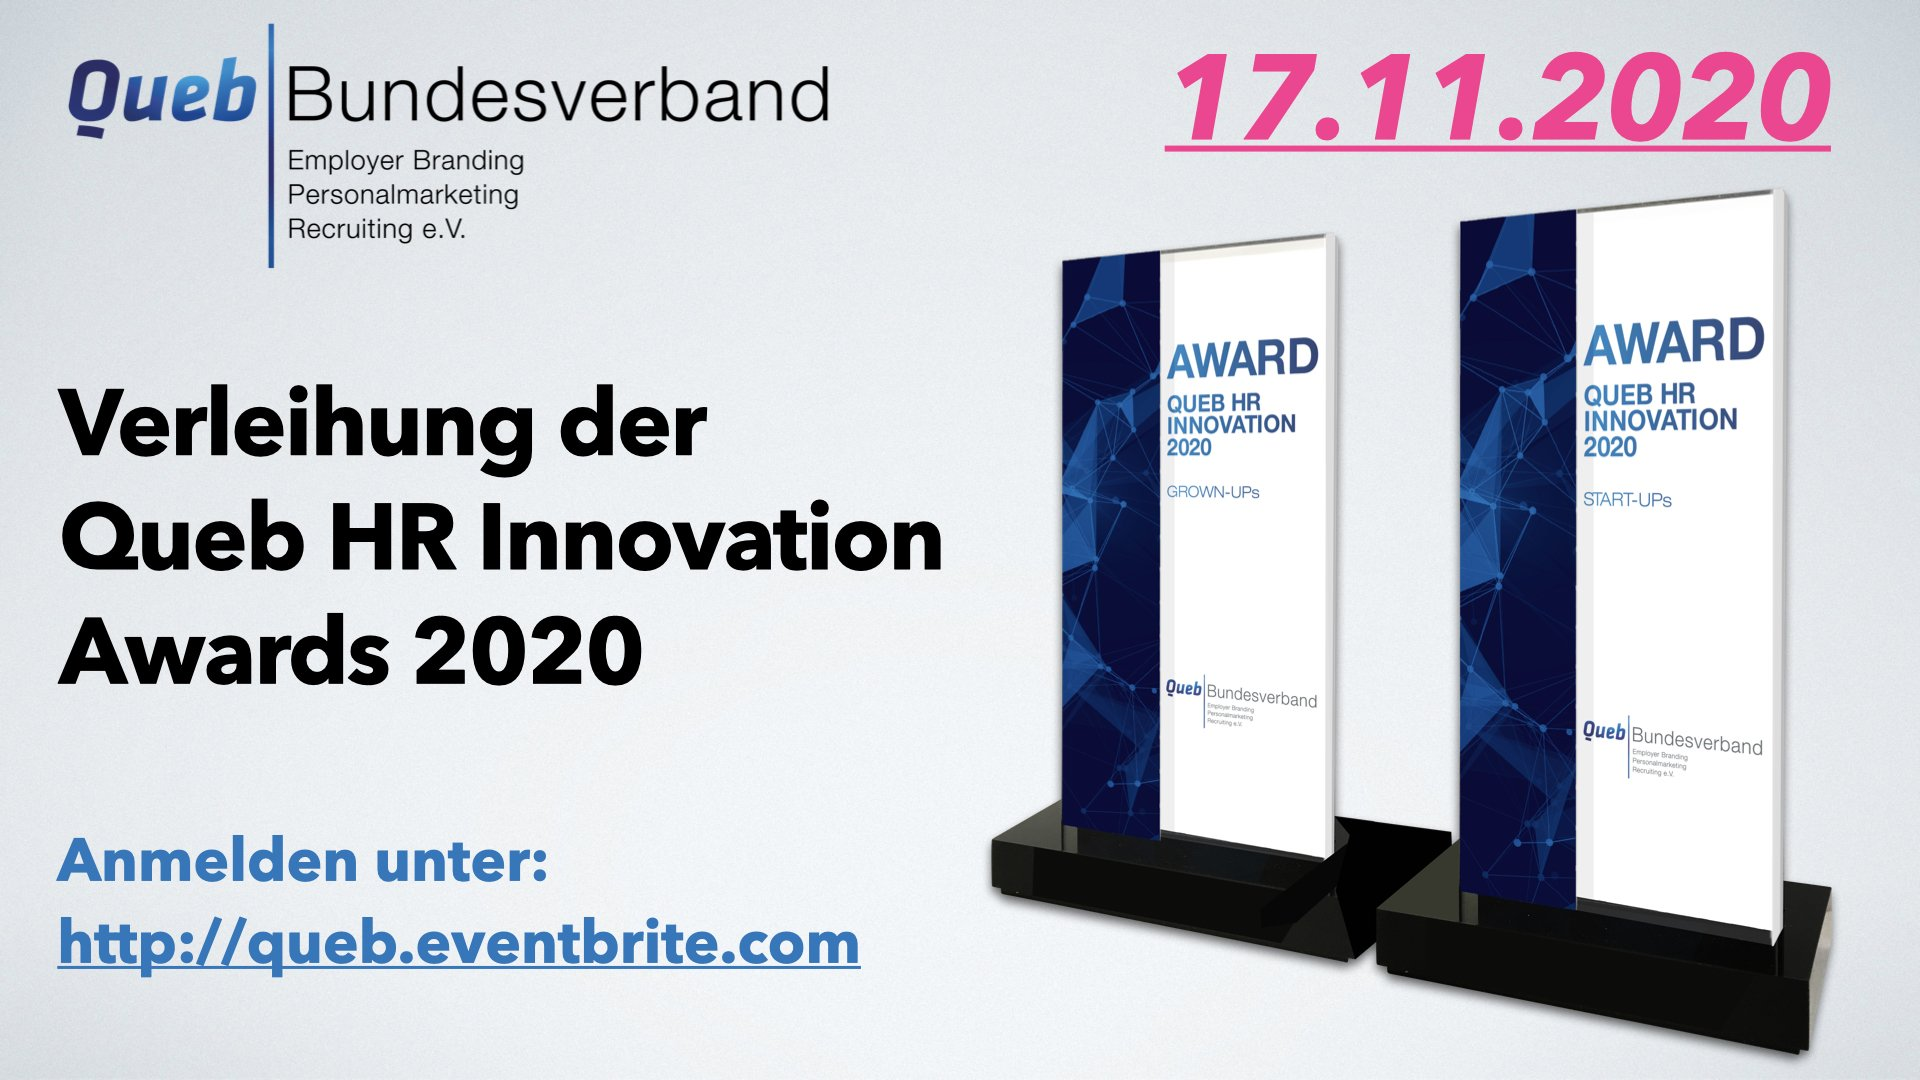 Queb HR Innovation Awards 2020 Eventbrite Anmeldung